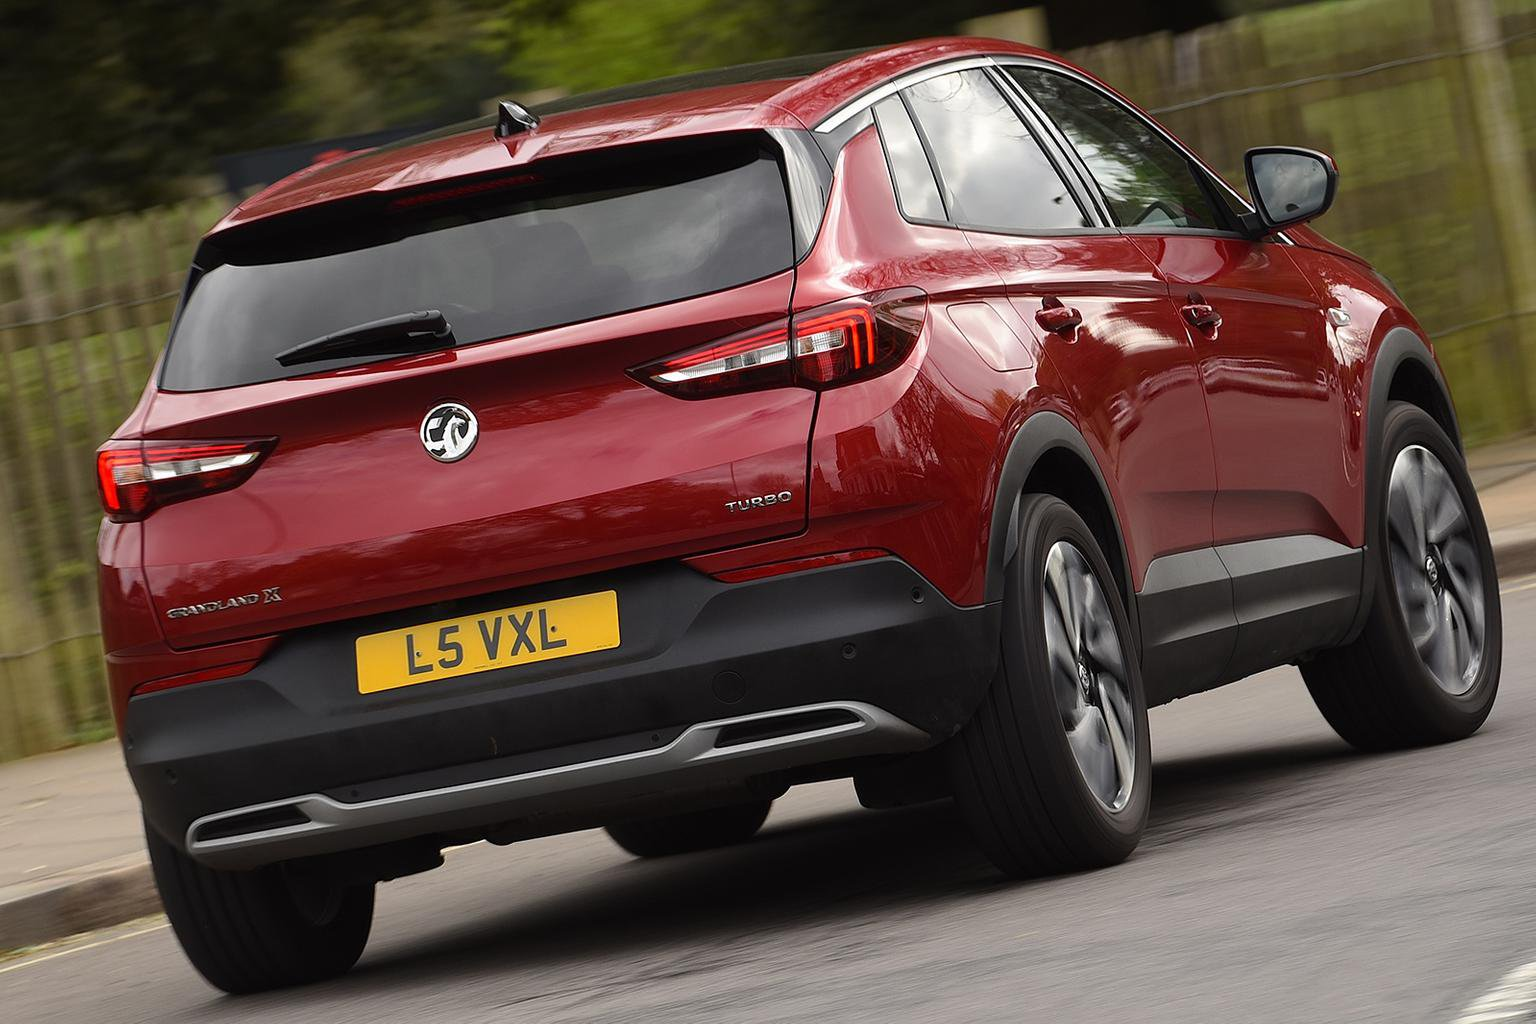 2018 Vauxhall Grandland X 2.0 Turbo D Ultimate – price, specs and release date